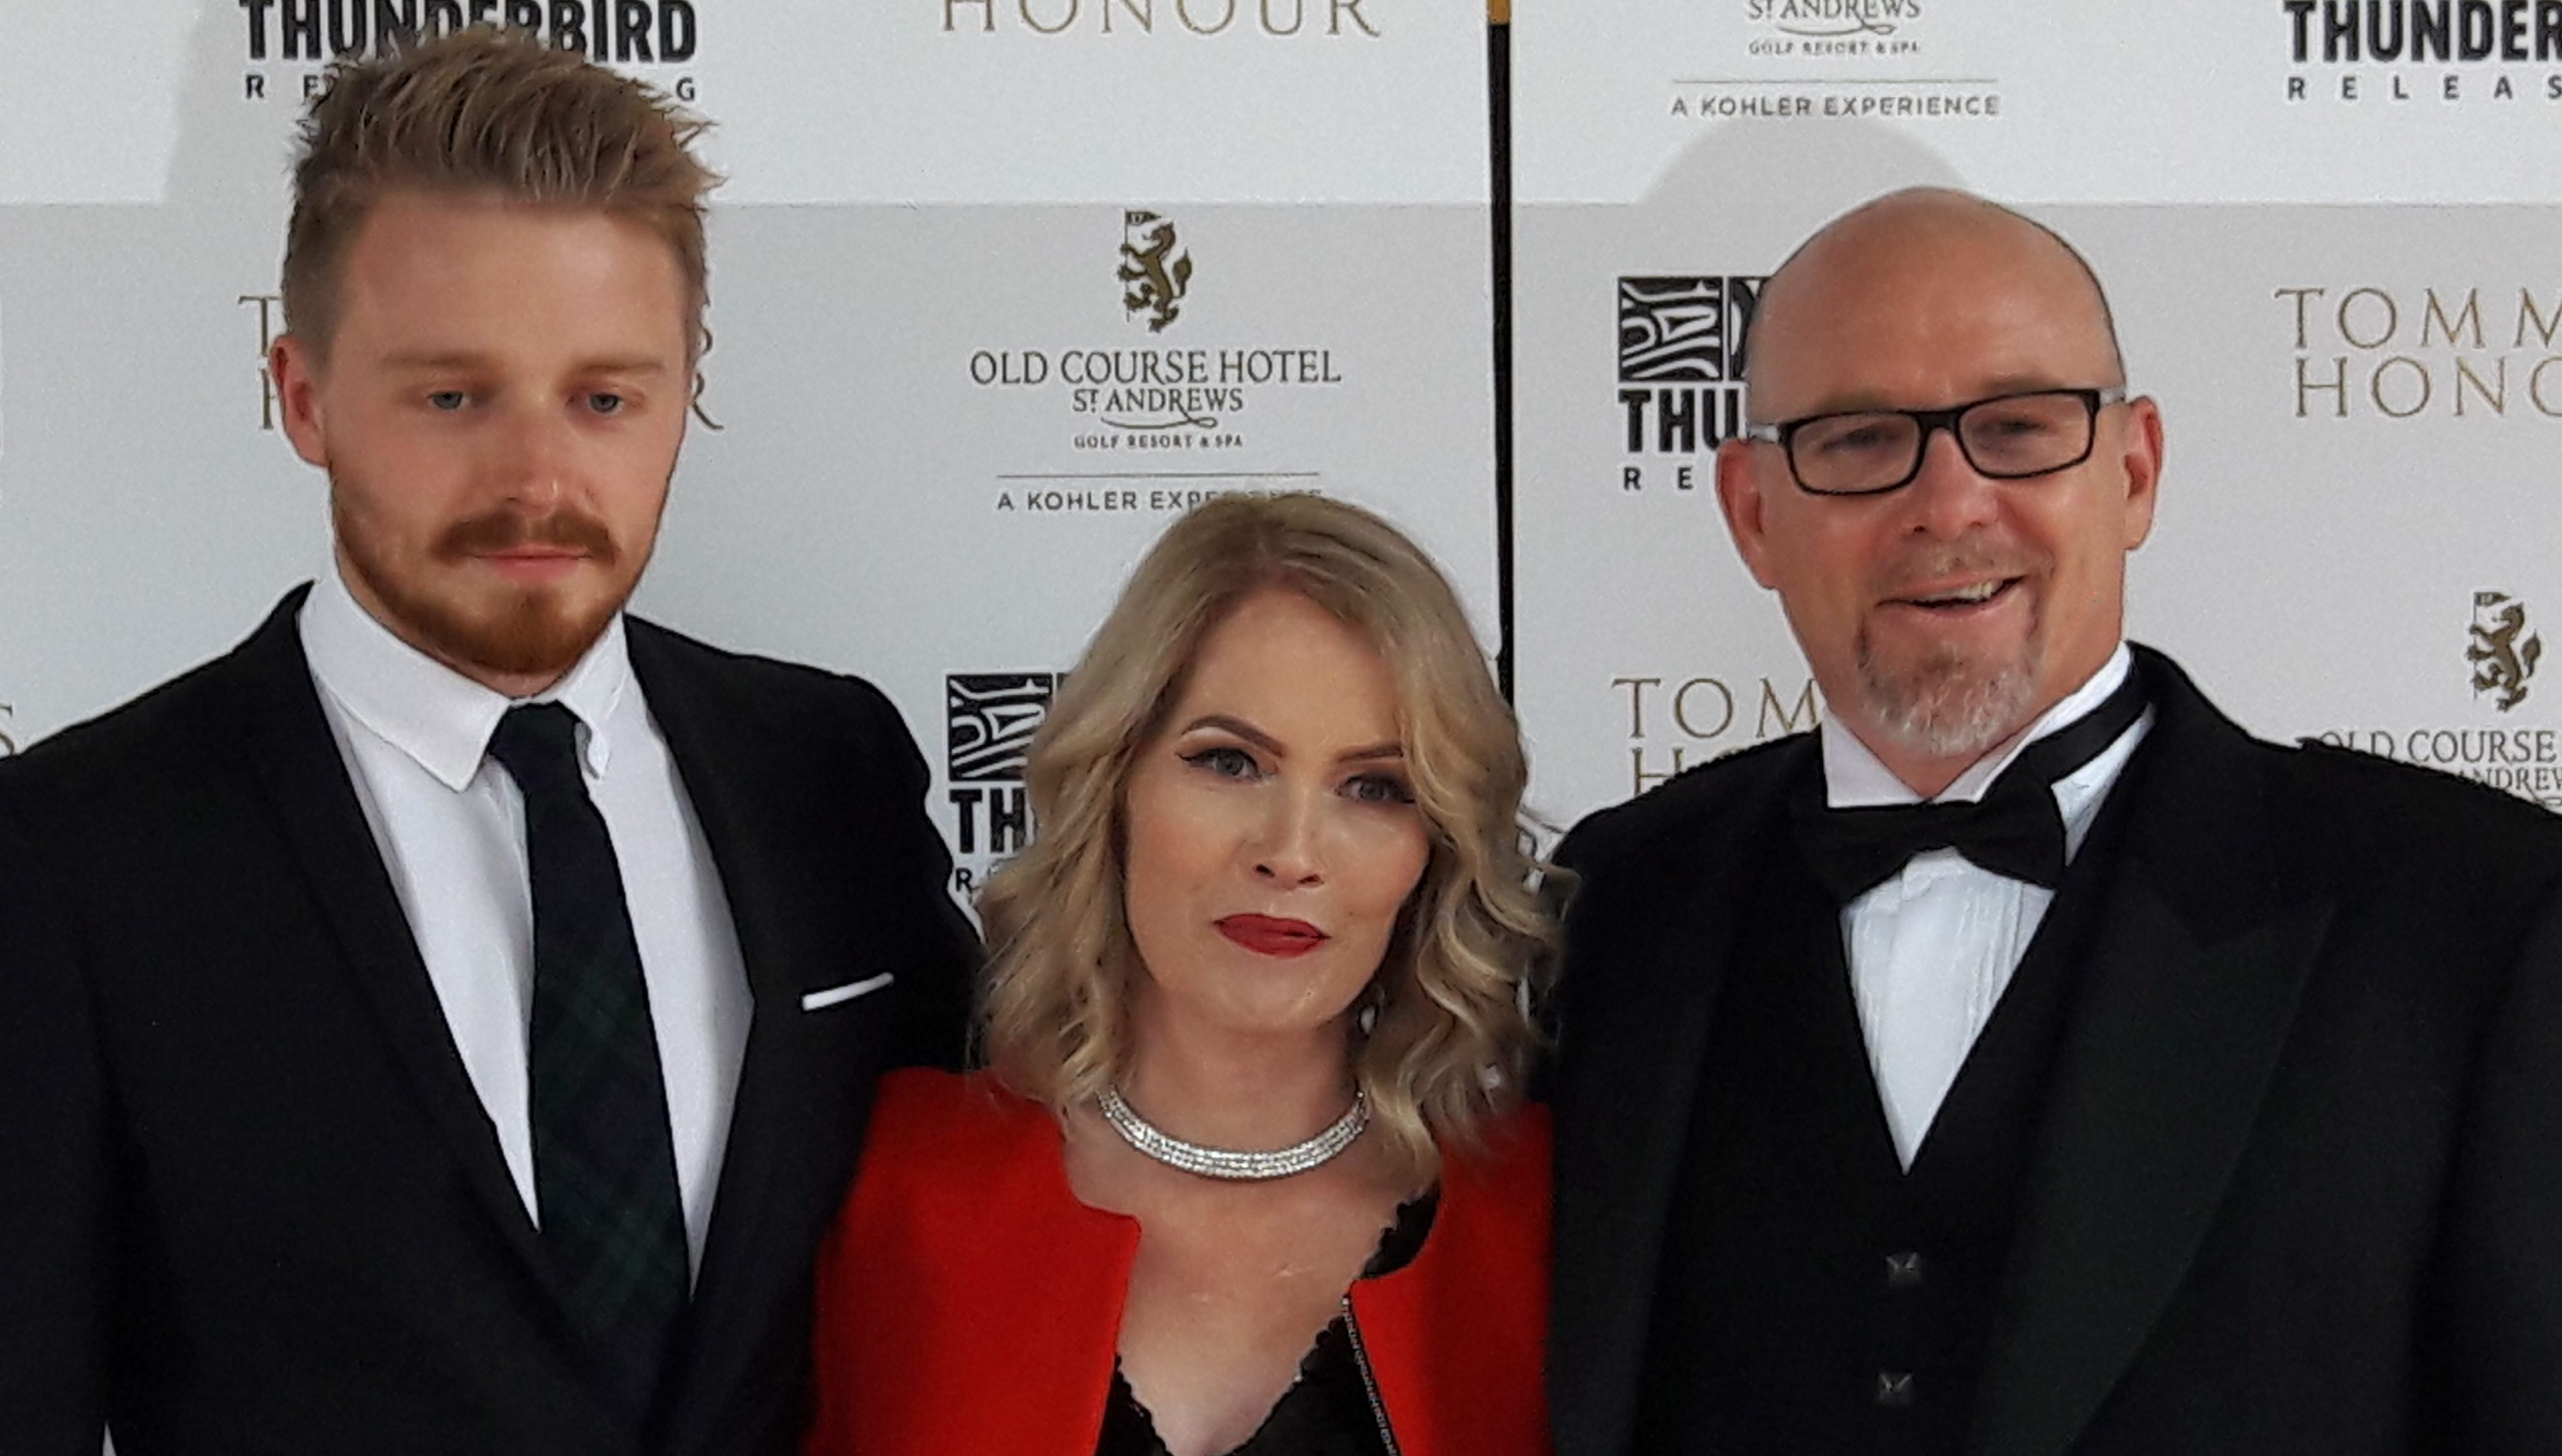 Jack Lowden, Therese and Jason Connery are pictured on the red carpet at the UK premiere of Tommy's Honour at the NPH Cinema in St Andrews